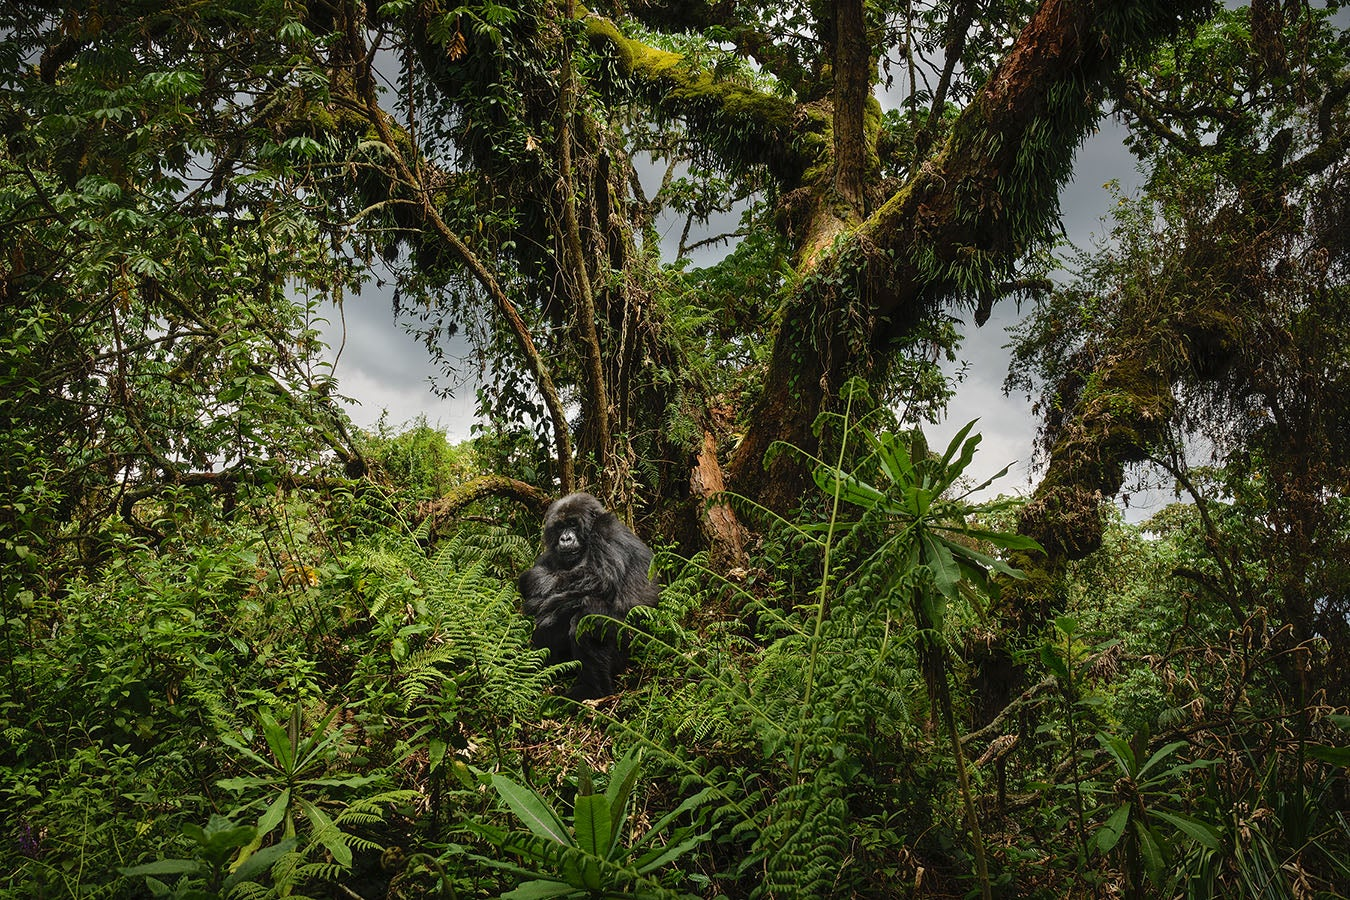 Gorilla in the Forest, Rwanda